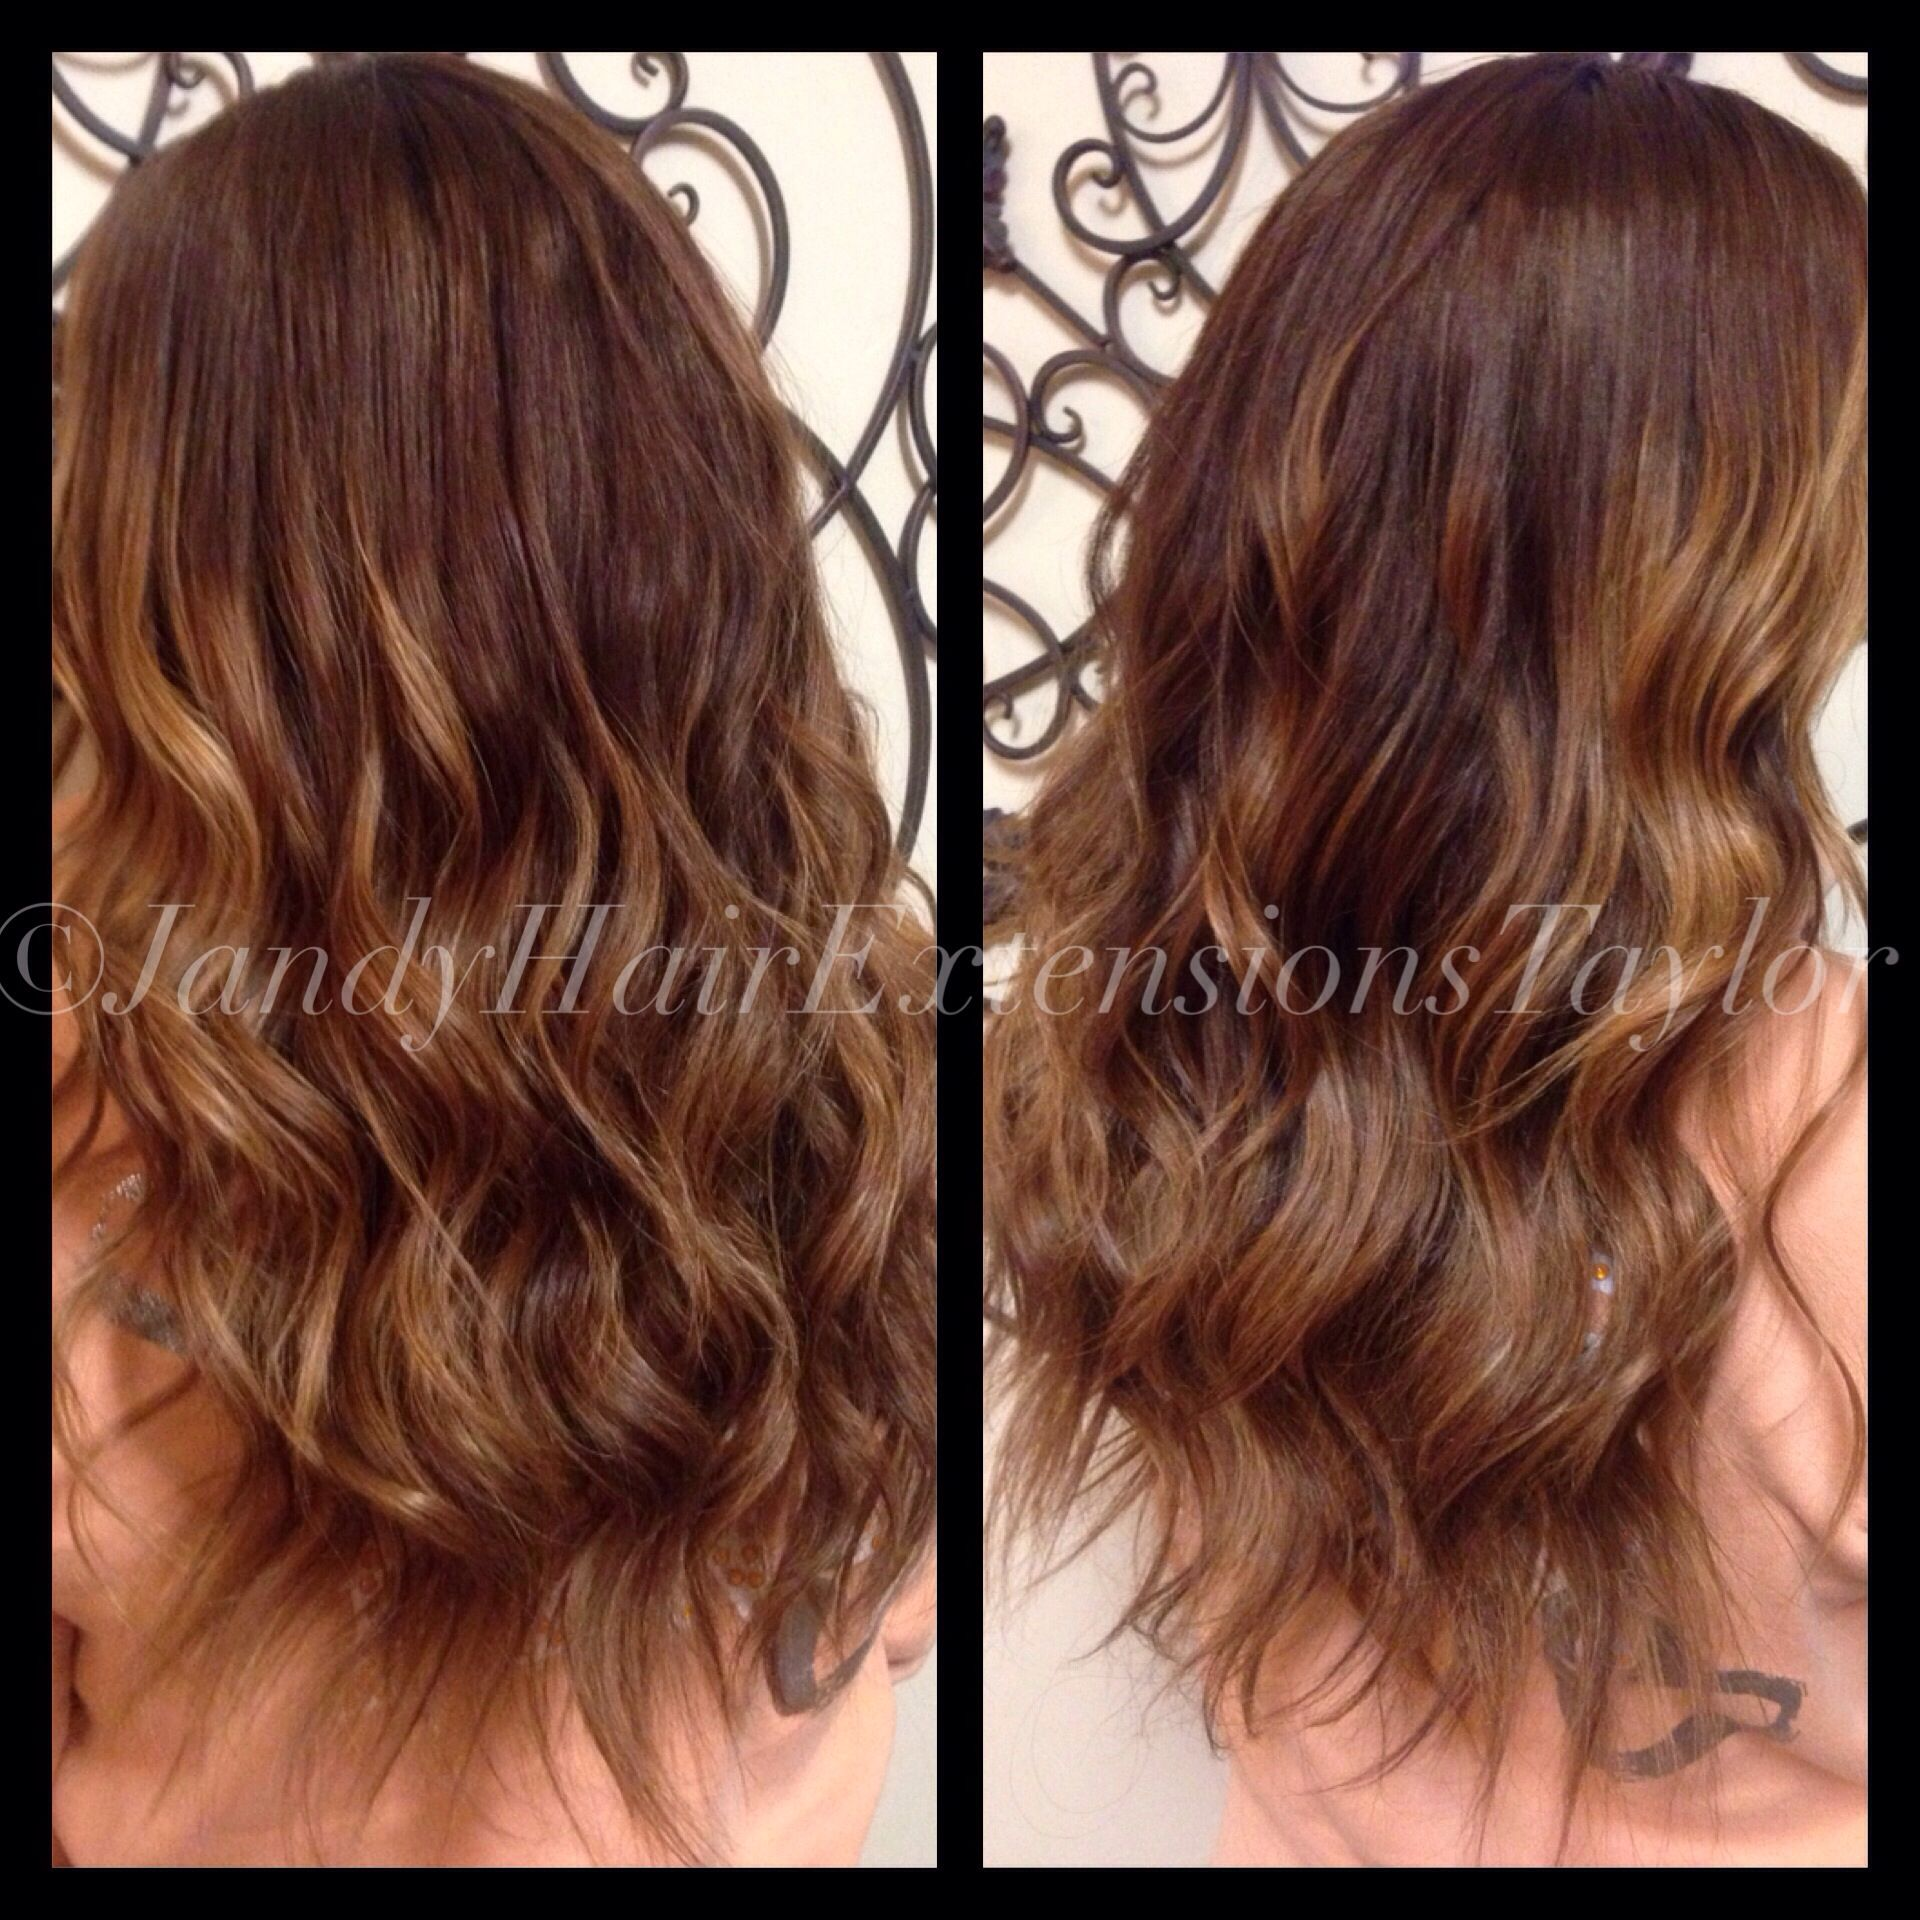 Hair Extensions For Thickness Hair Extension Specialist Jandy